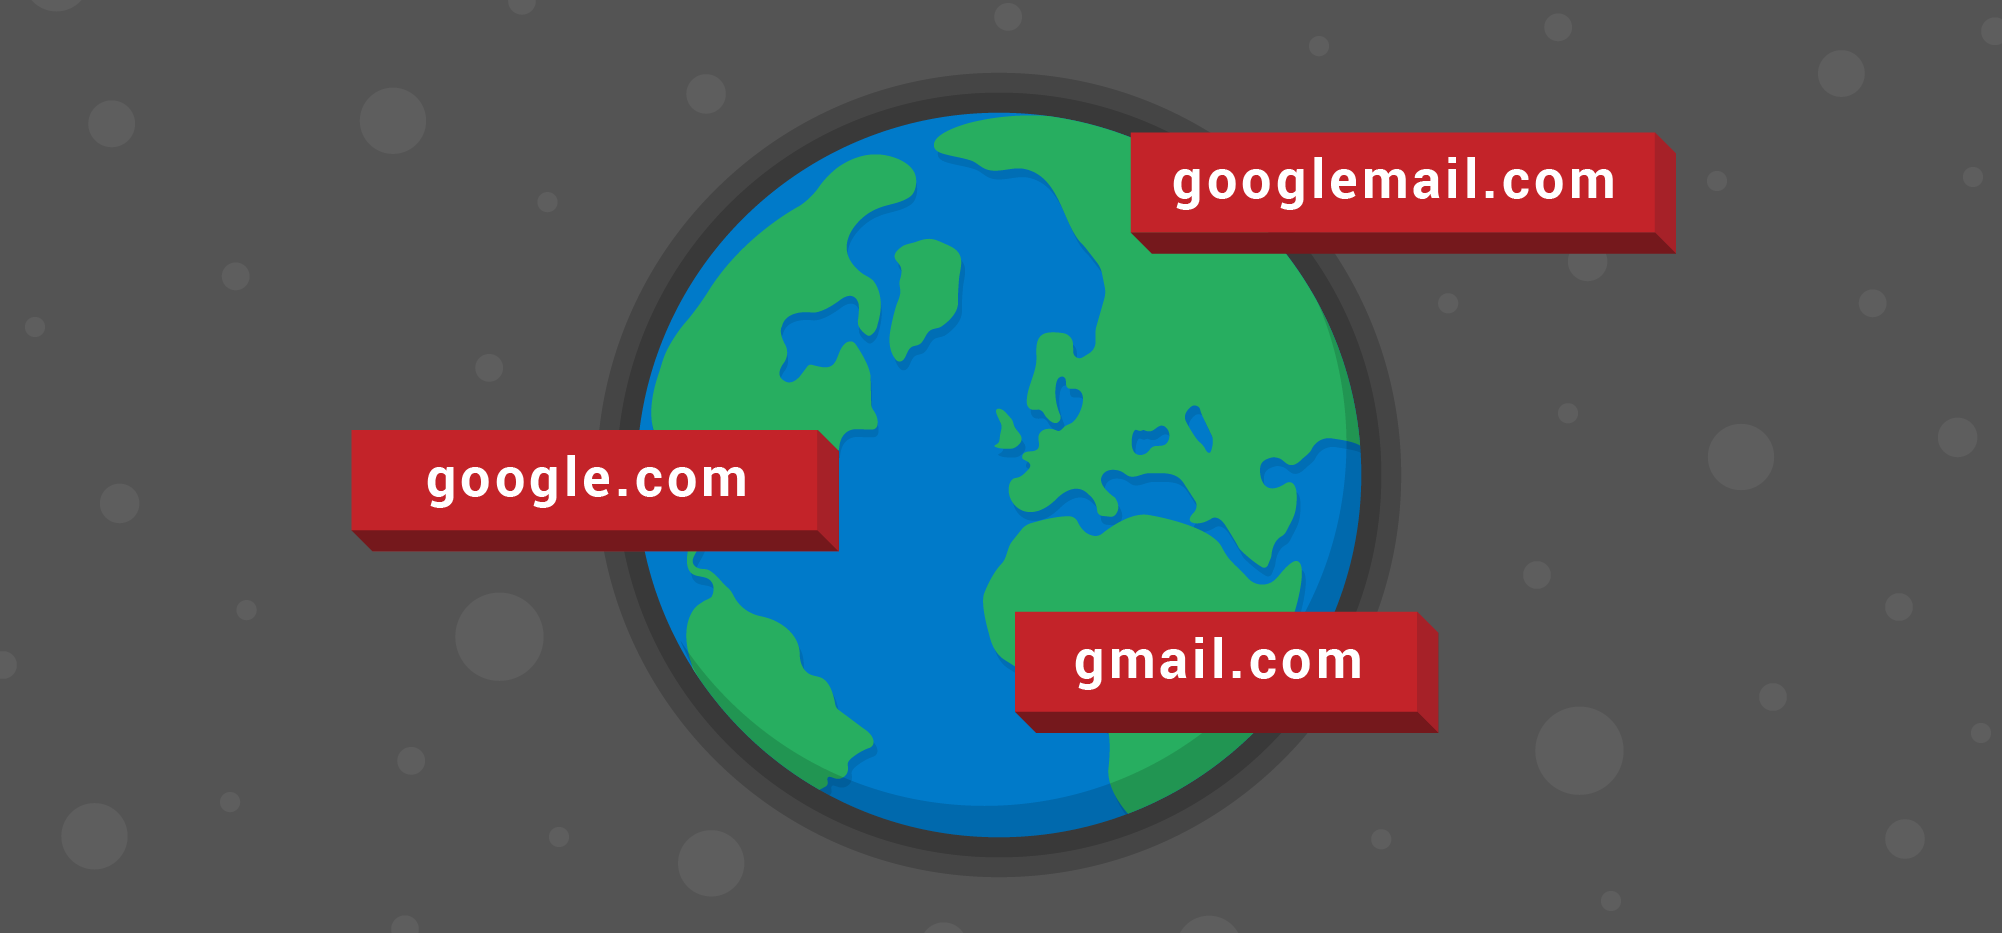 Understanding Gmail Domains: gmail com, googlemail com, and